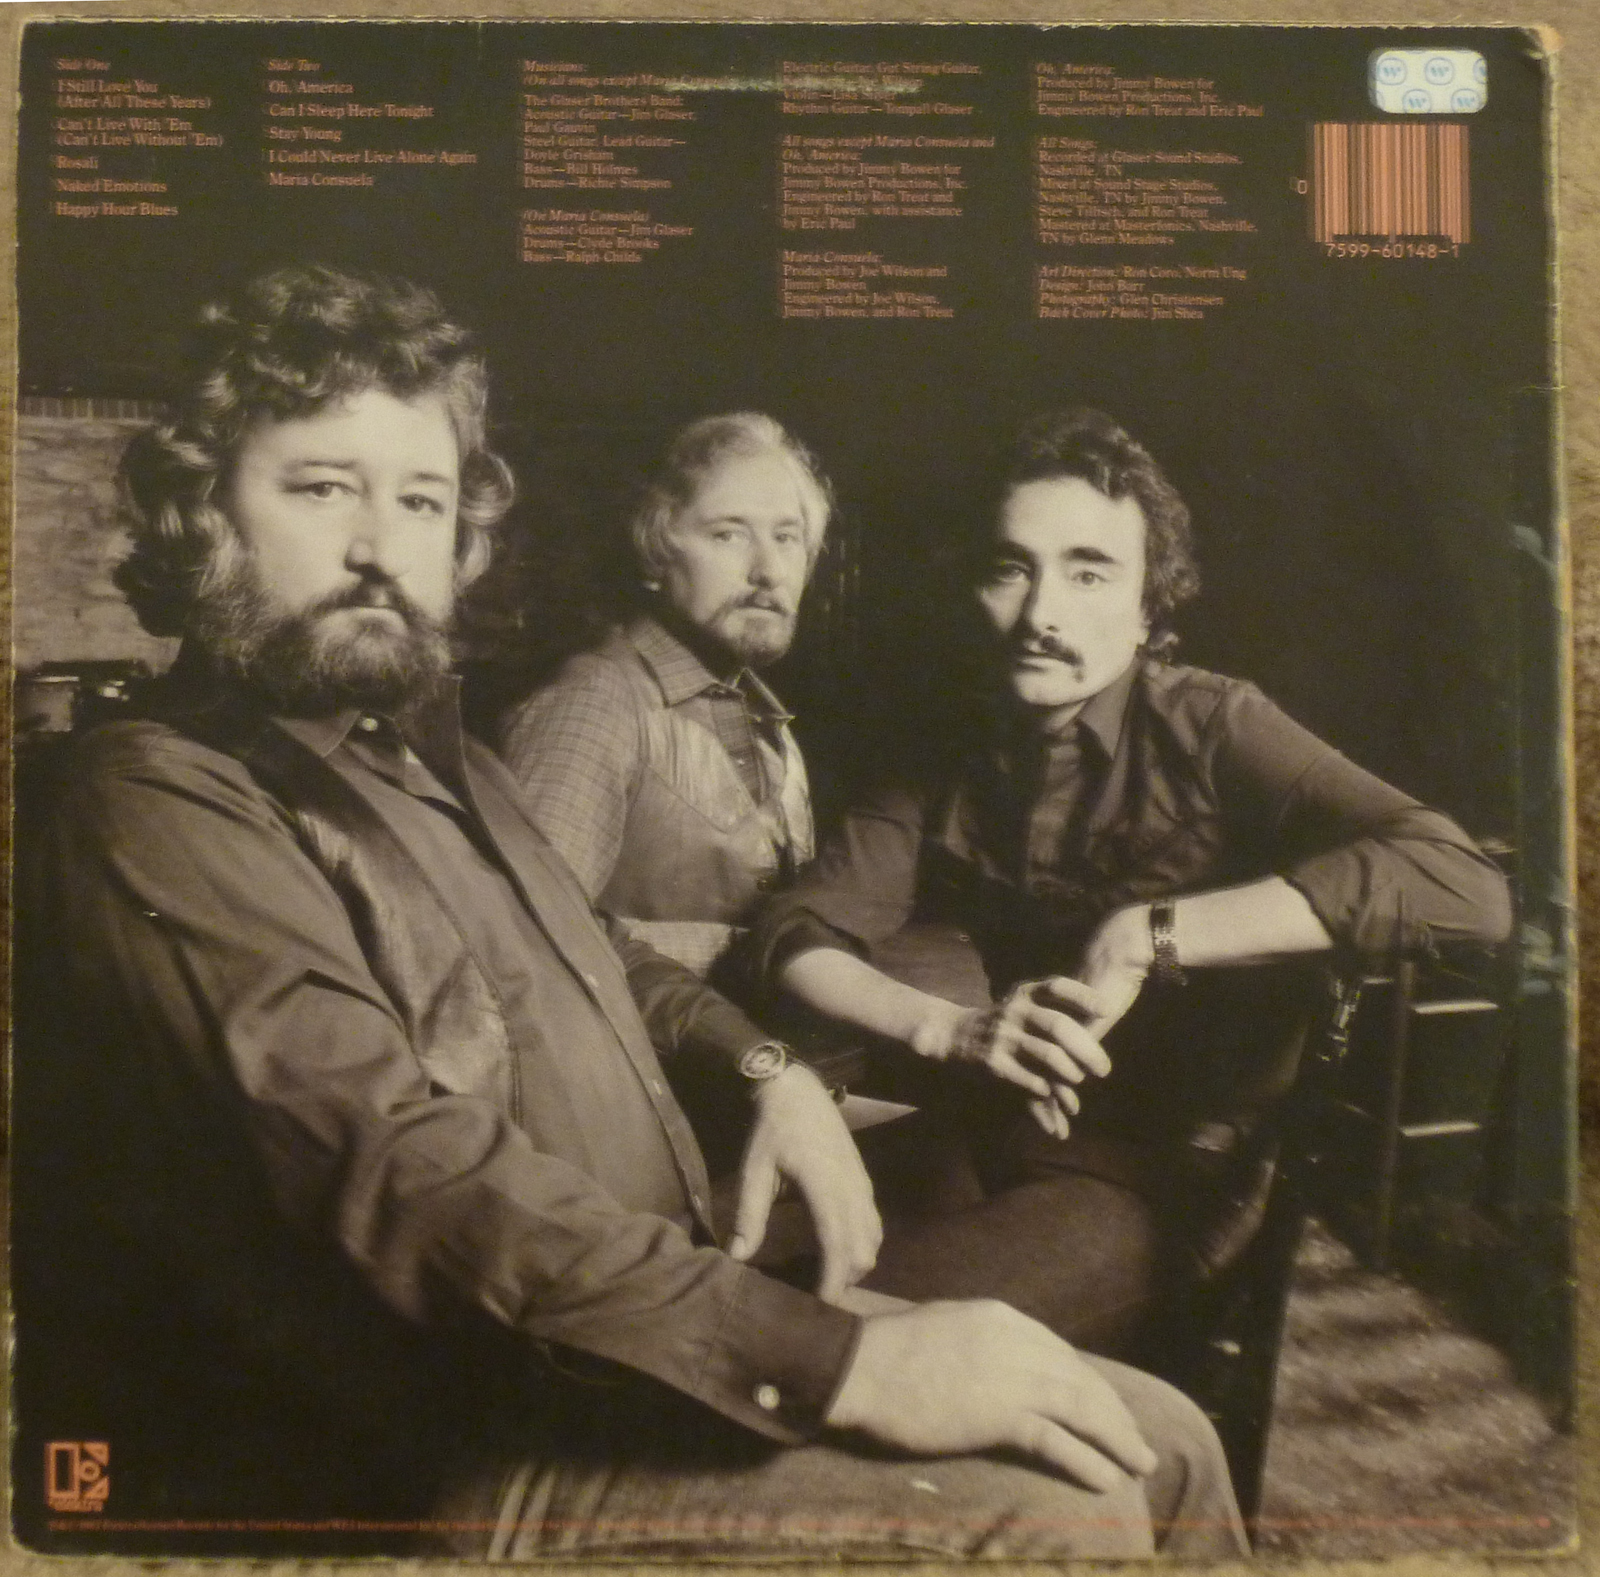 Tompall & The Glaser Brothers After All These Years LP - Autographed Country Music Memorabilia